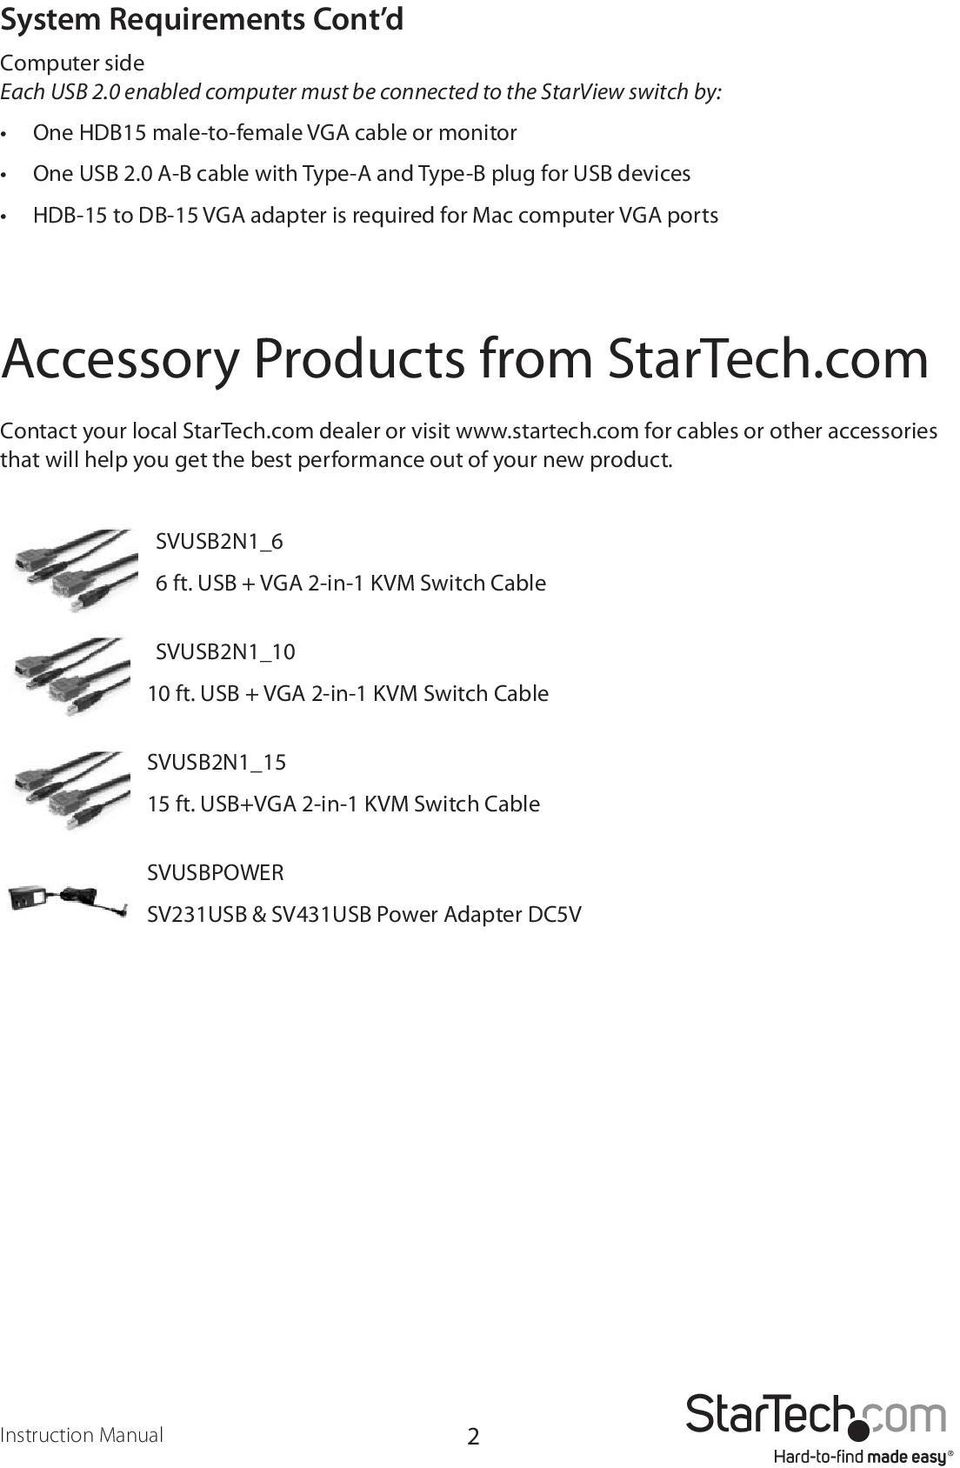 com Contact your local StarTech.com dealer or visit www.startech.com for cables or other accessories that will help you get the best performance out of your new product.